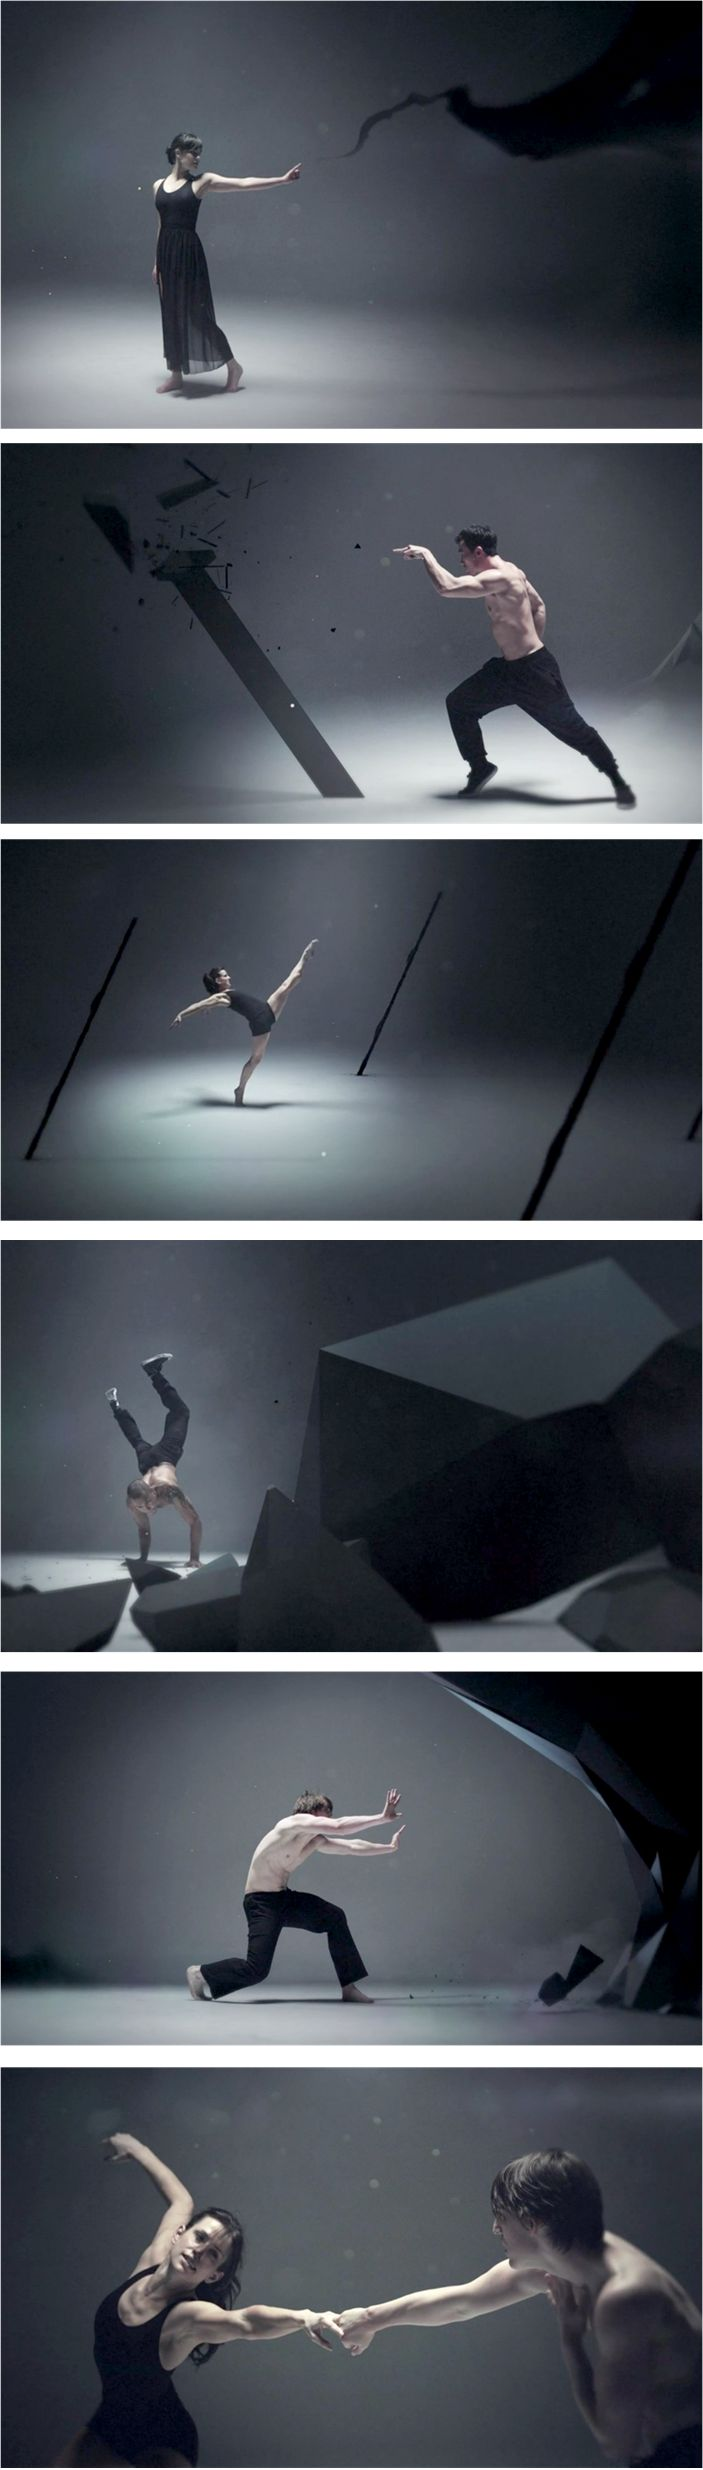 full video Future/Proof @ http://vitamincr.com/2012/04/a-visually-stunning-dance-video-future-proof/ << whatever this is it looks cool.